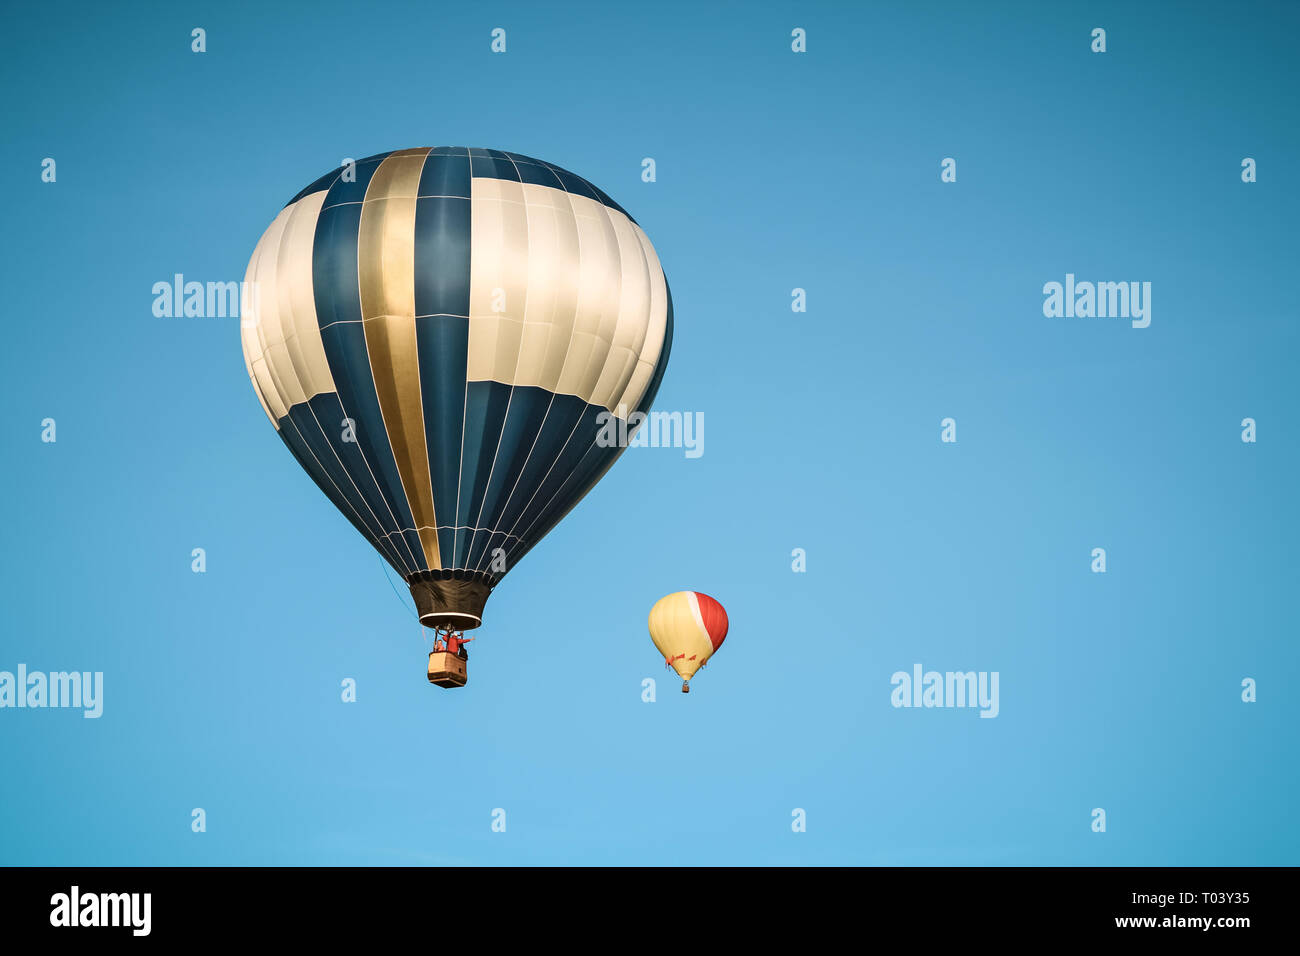 Two hot air balloons in the clear blue sky during a festival. Stock Photo